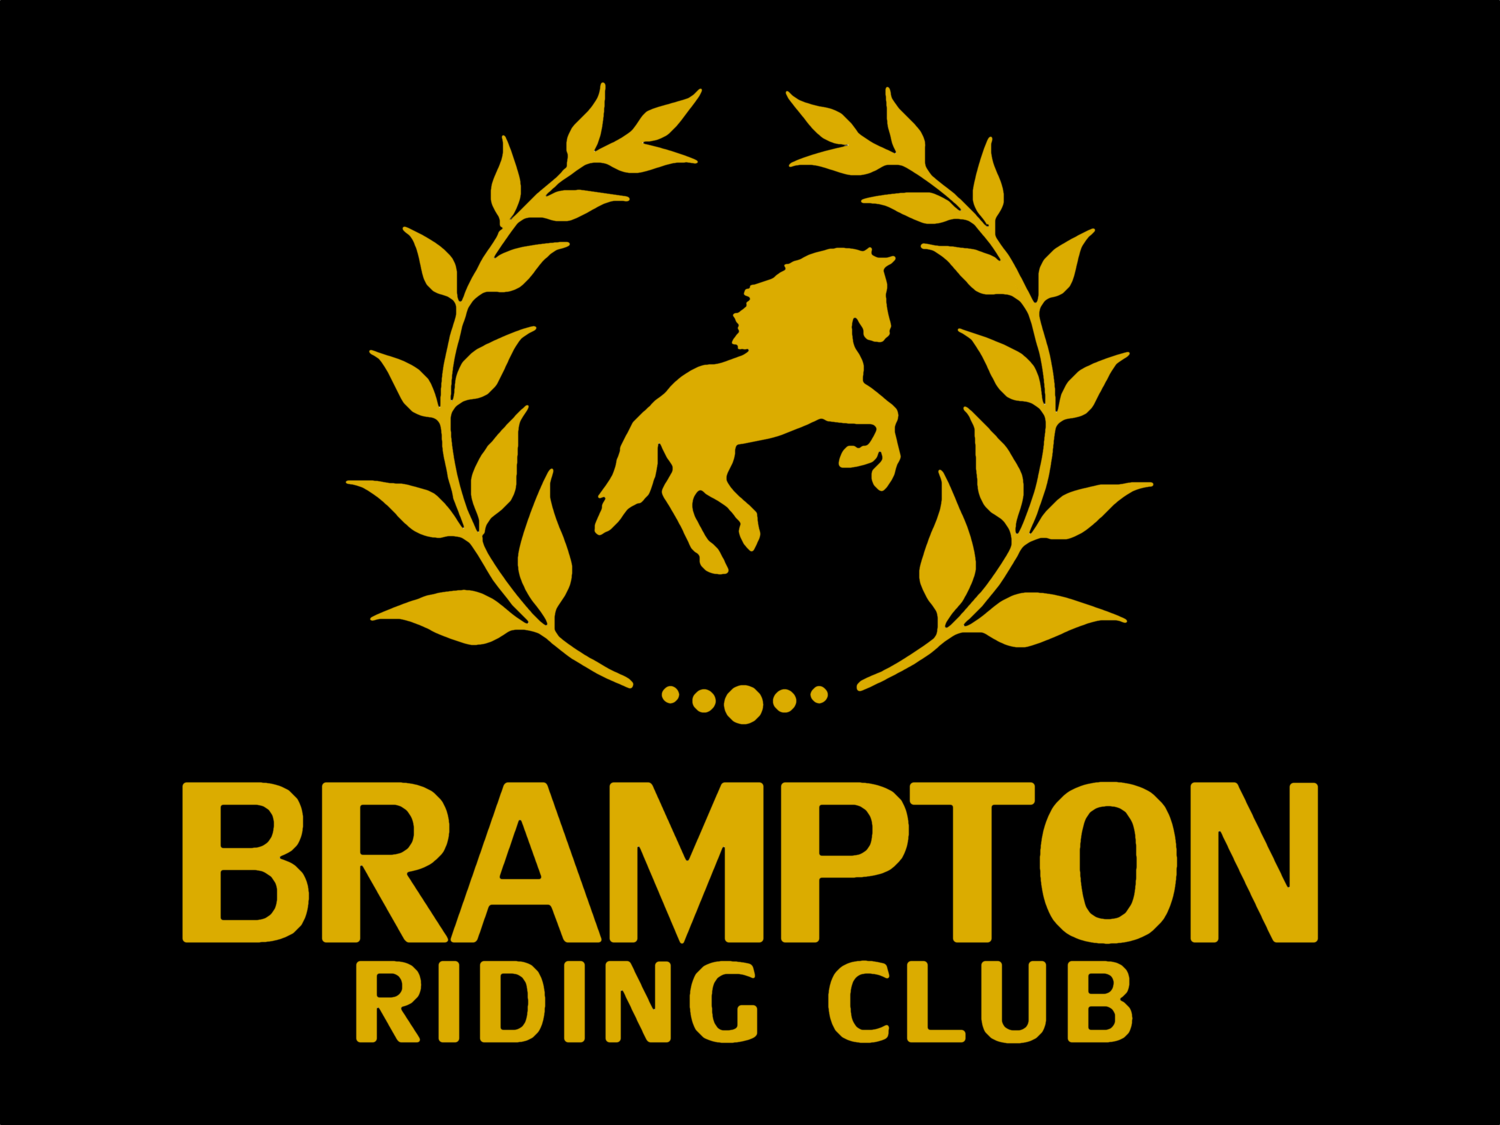 Brampton Riding Club